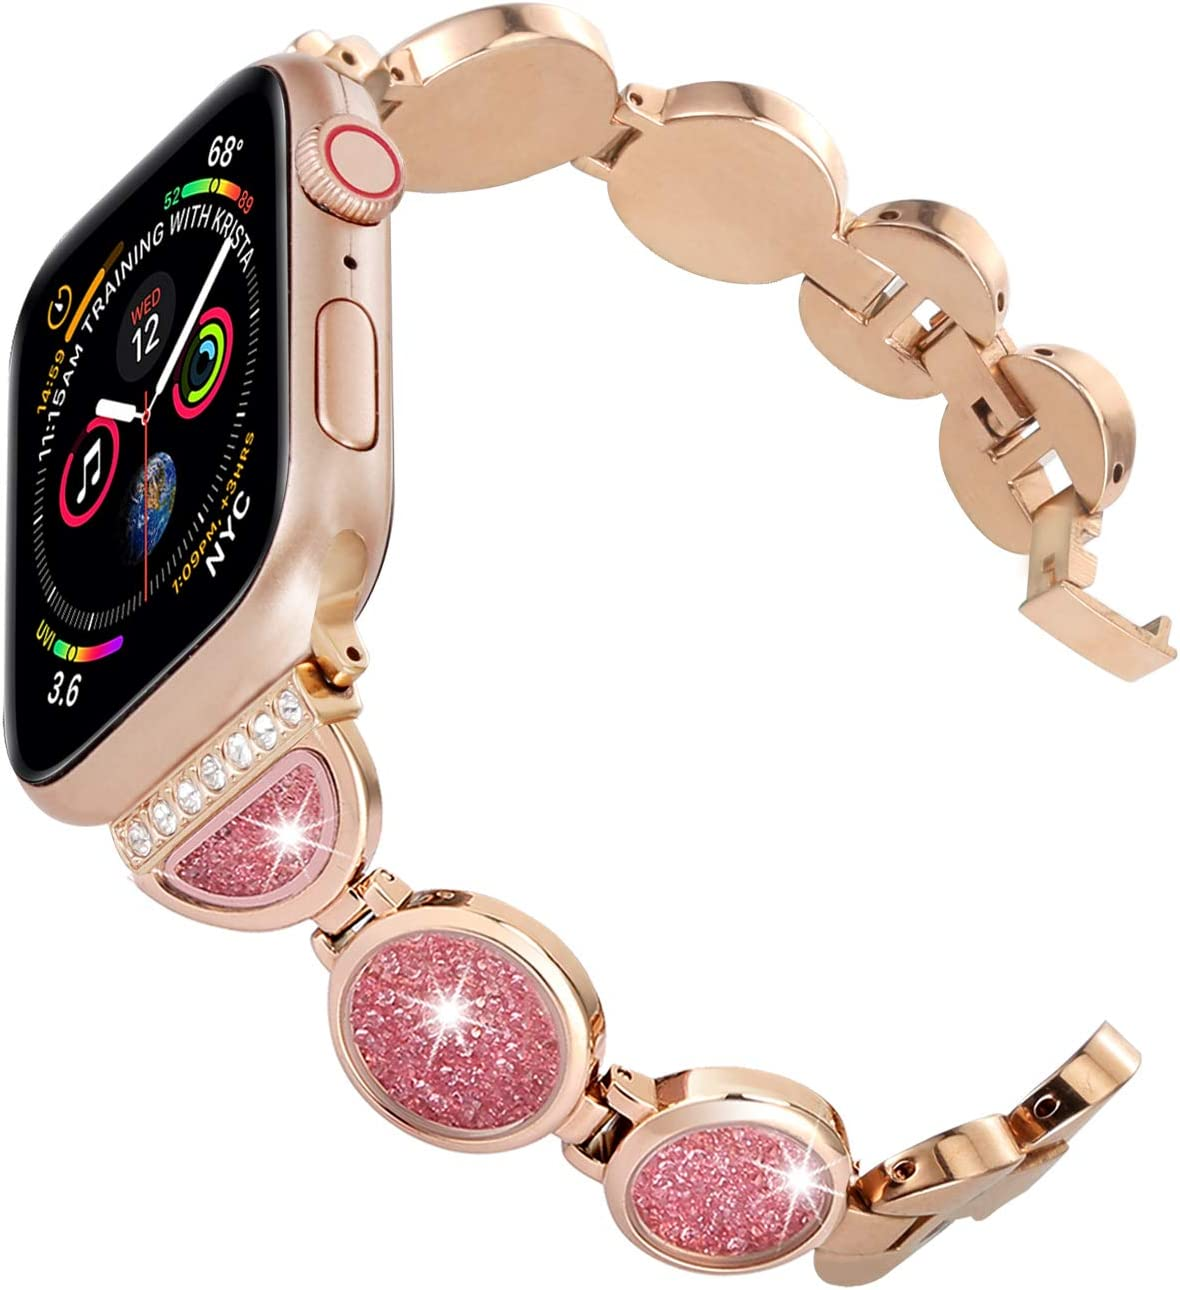 Ritastar for Apple Watch Band Bracelet Stainless Steel 44mm 42mm,Replacement Accessories Jewelry Rhinestone Strap Wrist Bands,Shifting Diamonds,Adjustable Metal Buckle for Series 5 4 3 2 1,Rose Gold